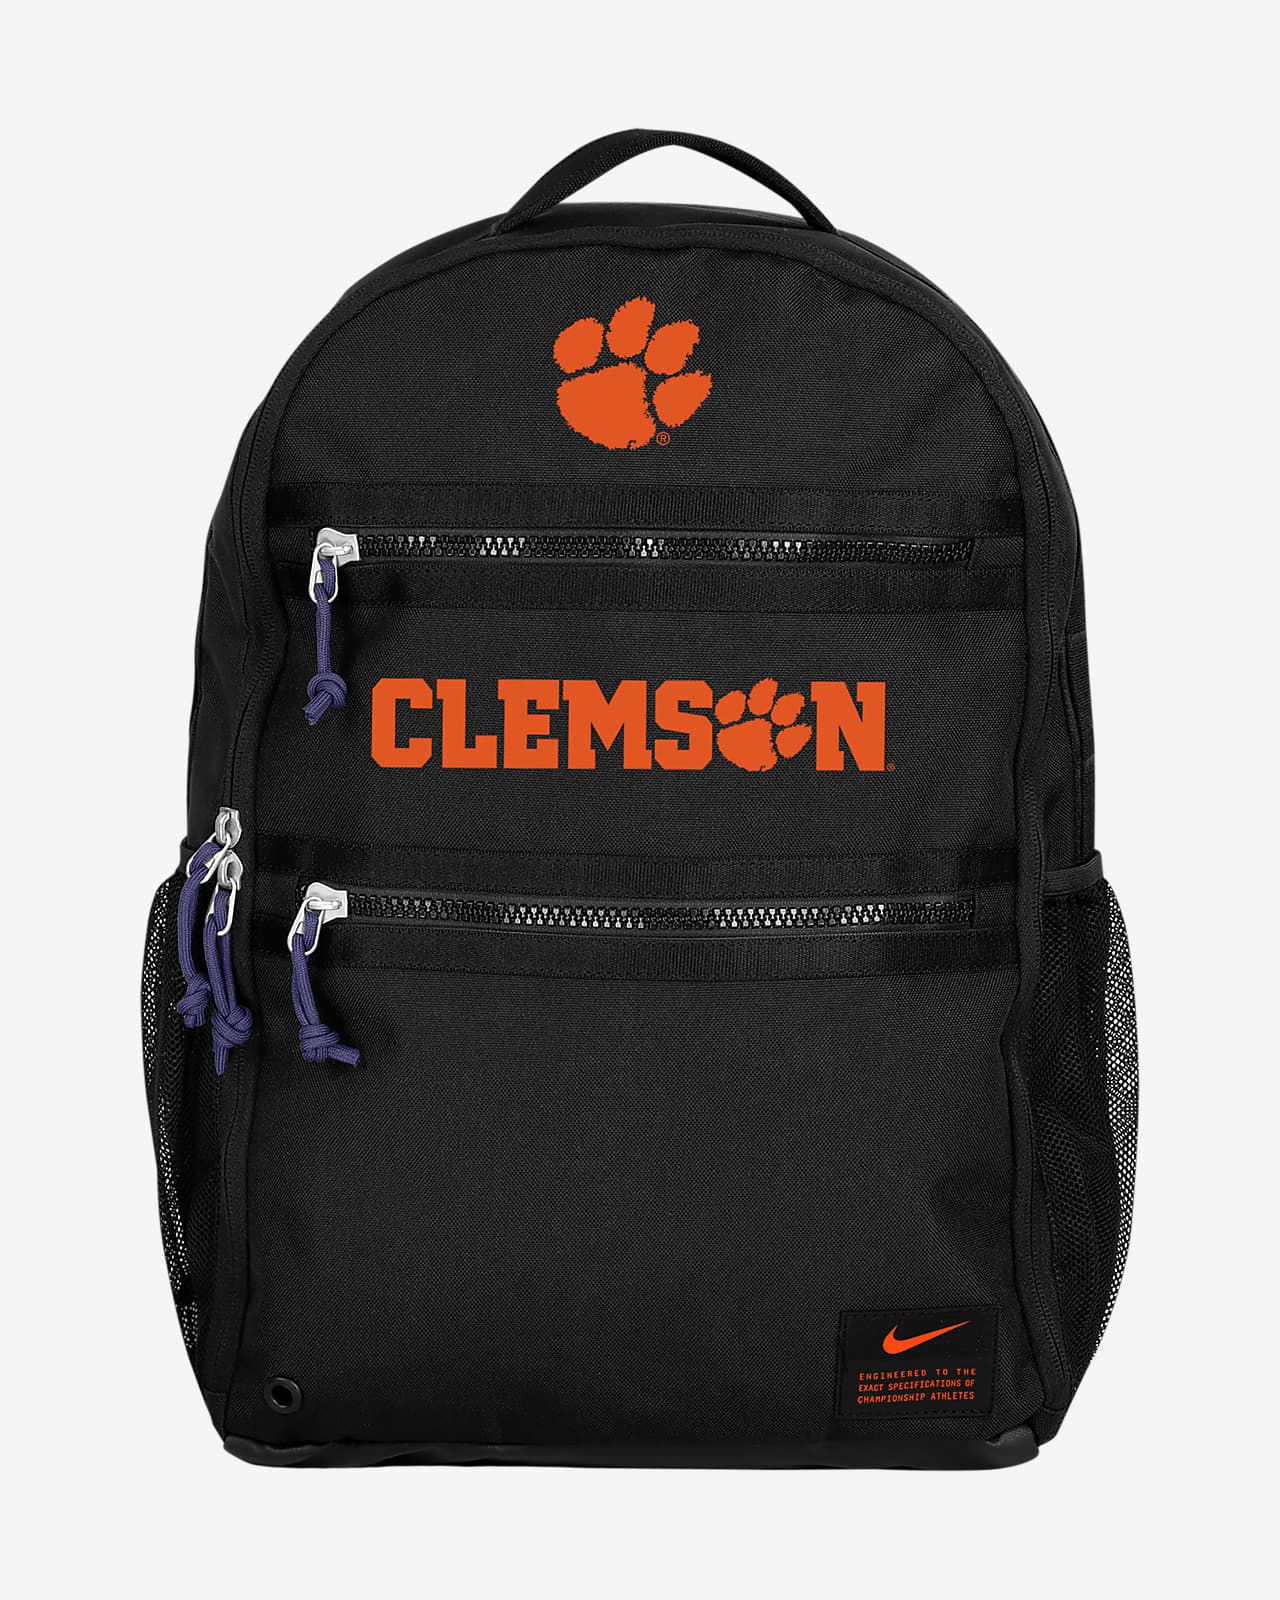 Nike College (Clemson) Backpack